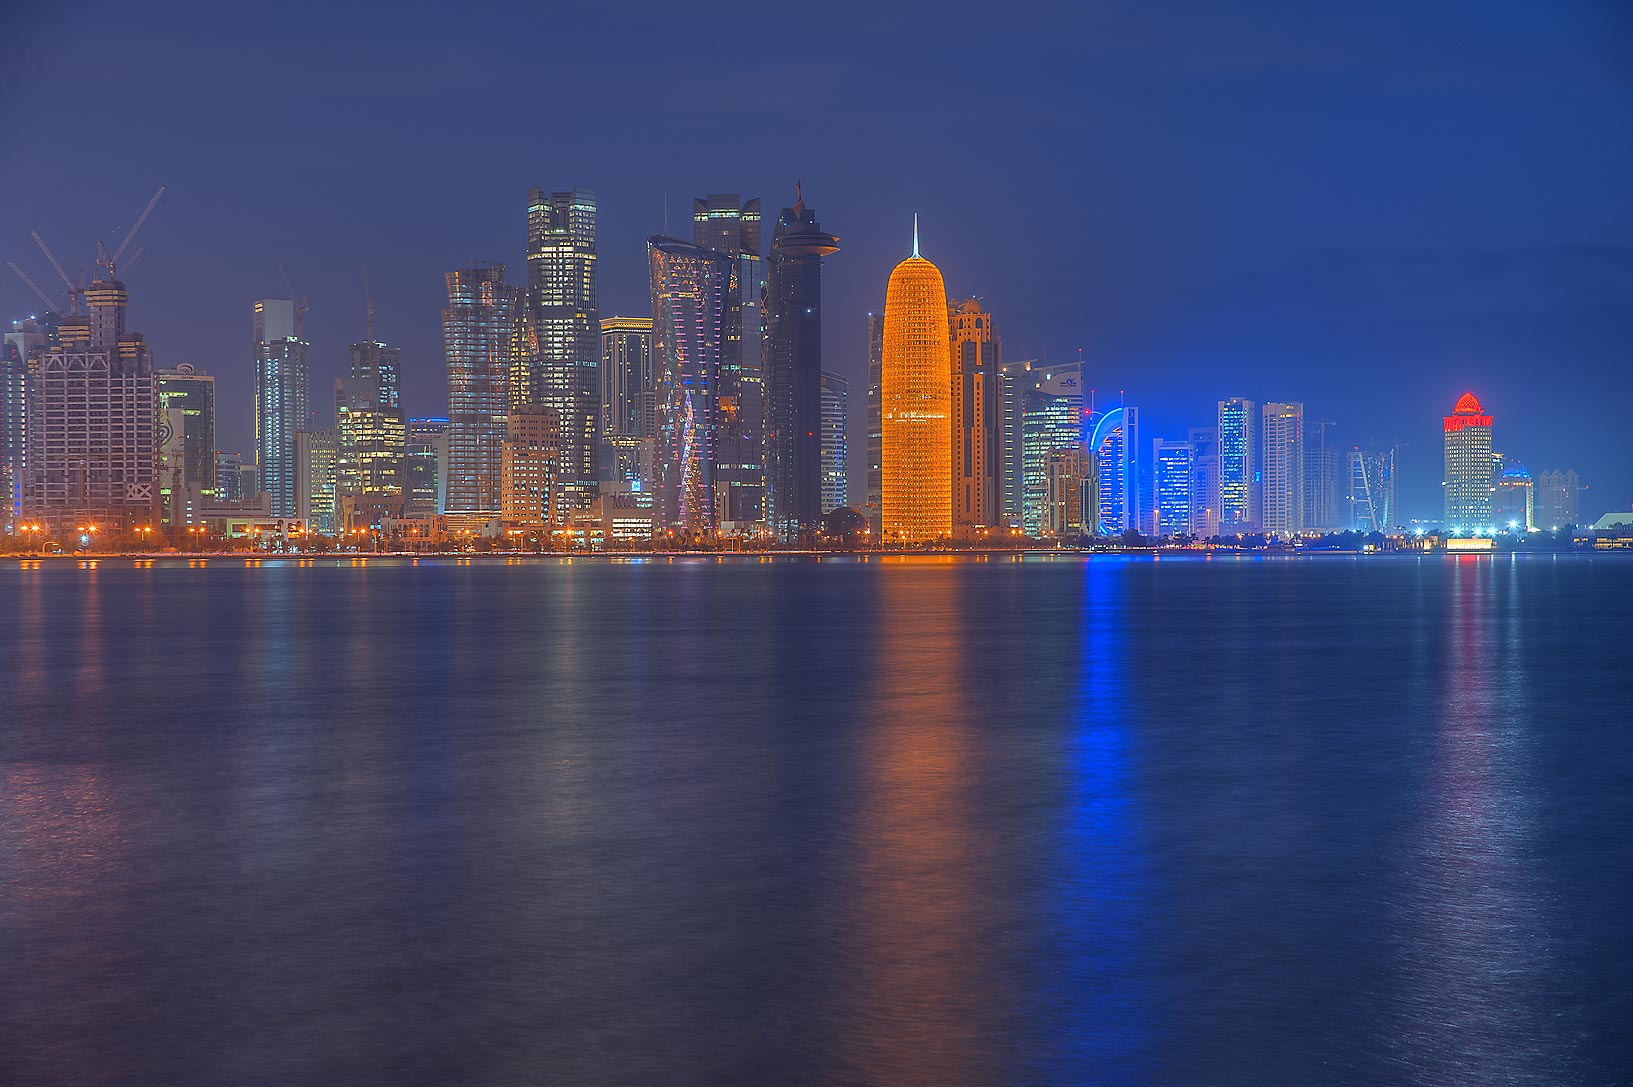 Glowing Burj Qatar Tower in West Bay from Corniche Promenade at morning. Doha, Qatar